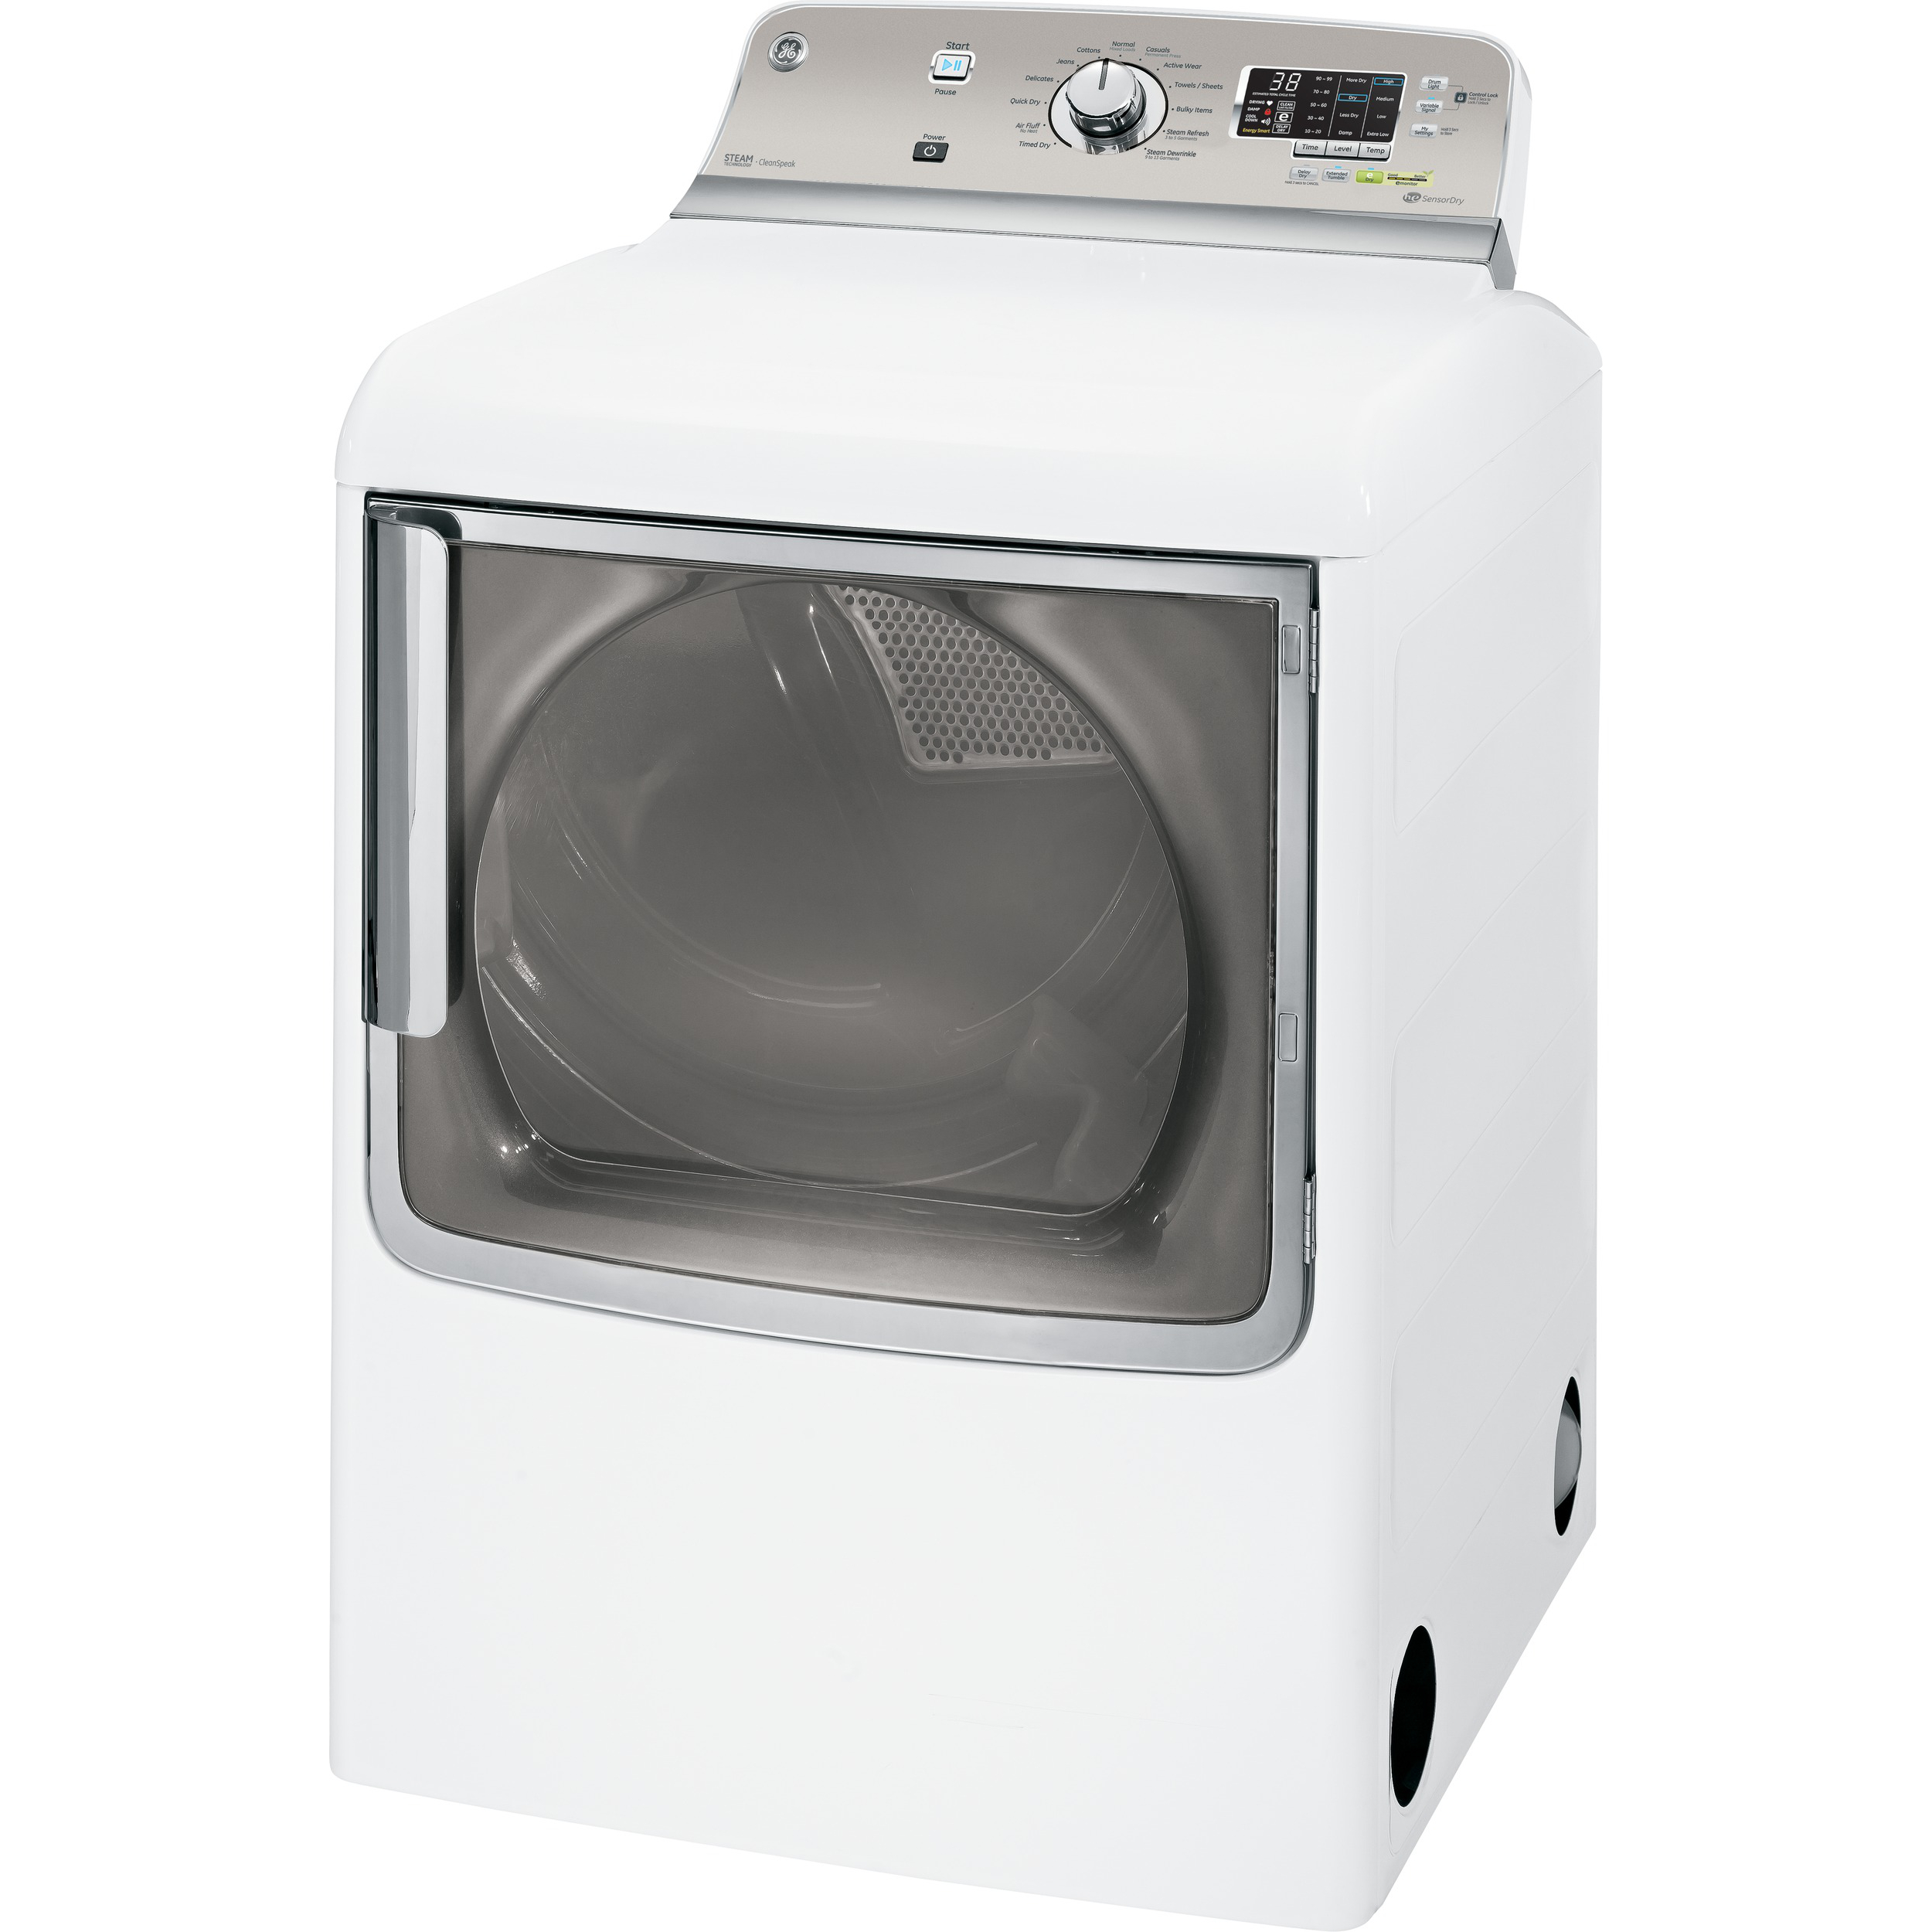 GE 7.8 cu. ft. Steam Gas Dryer w/ Stainless Steel Drum - White